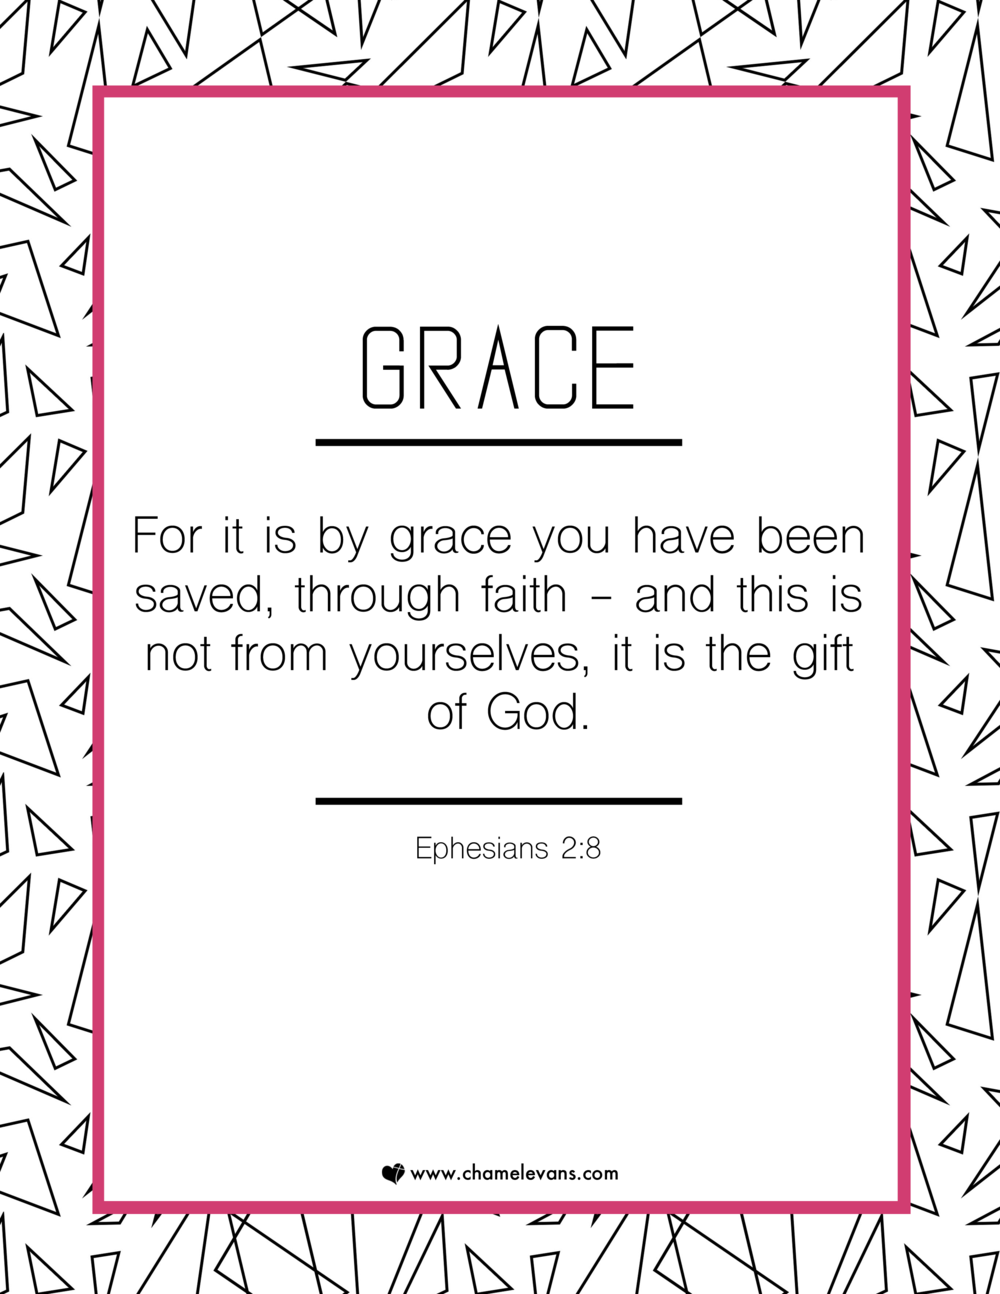 free scripture art printables - grace - stand in God's truth | www.chamelevans.com